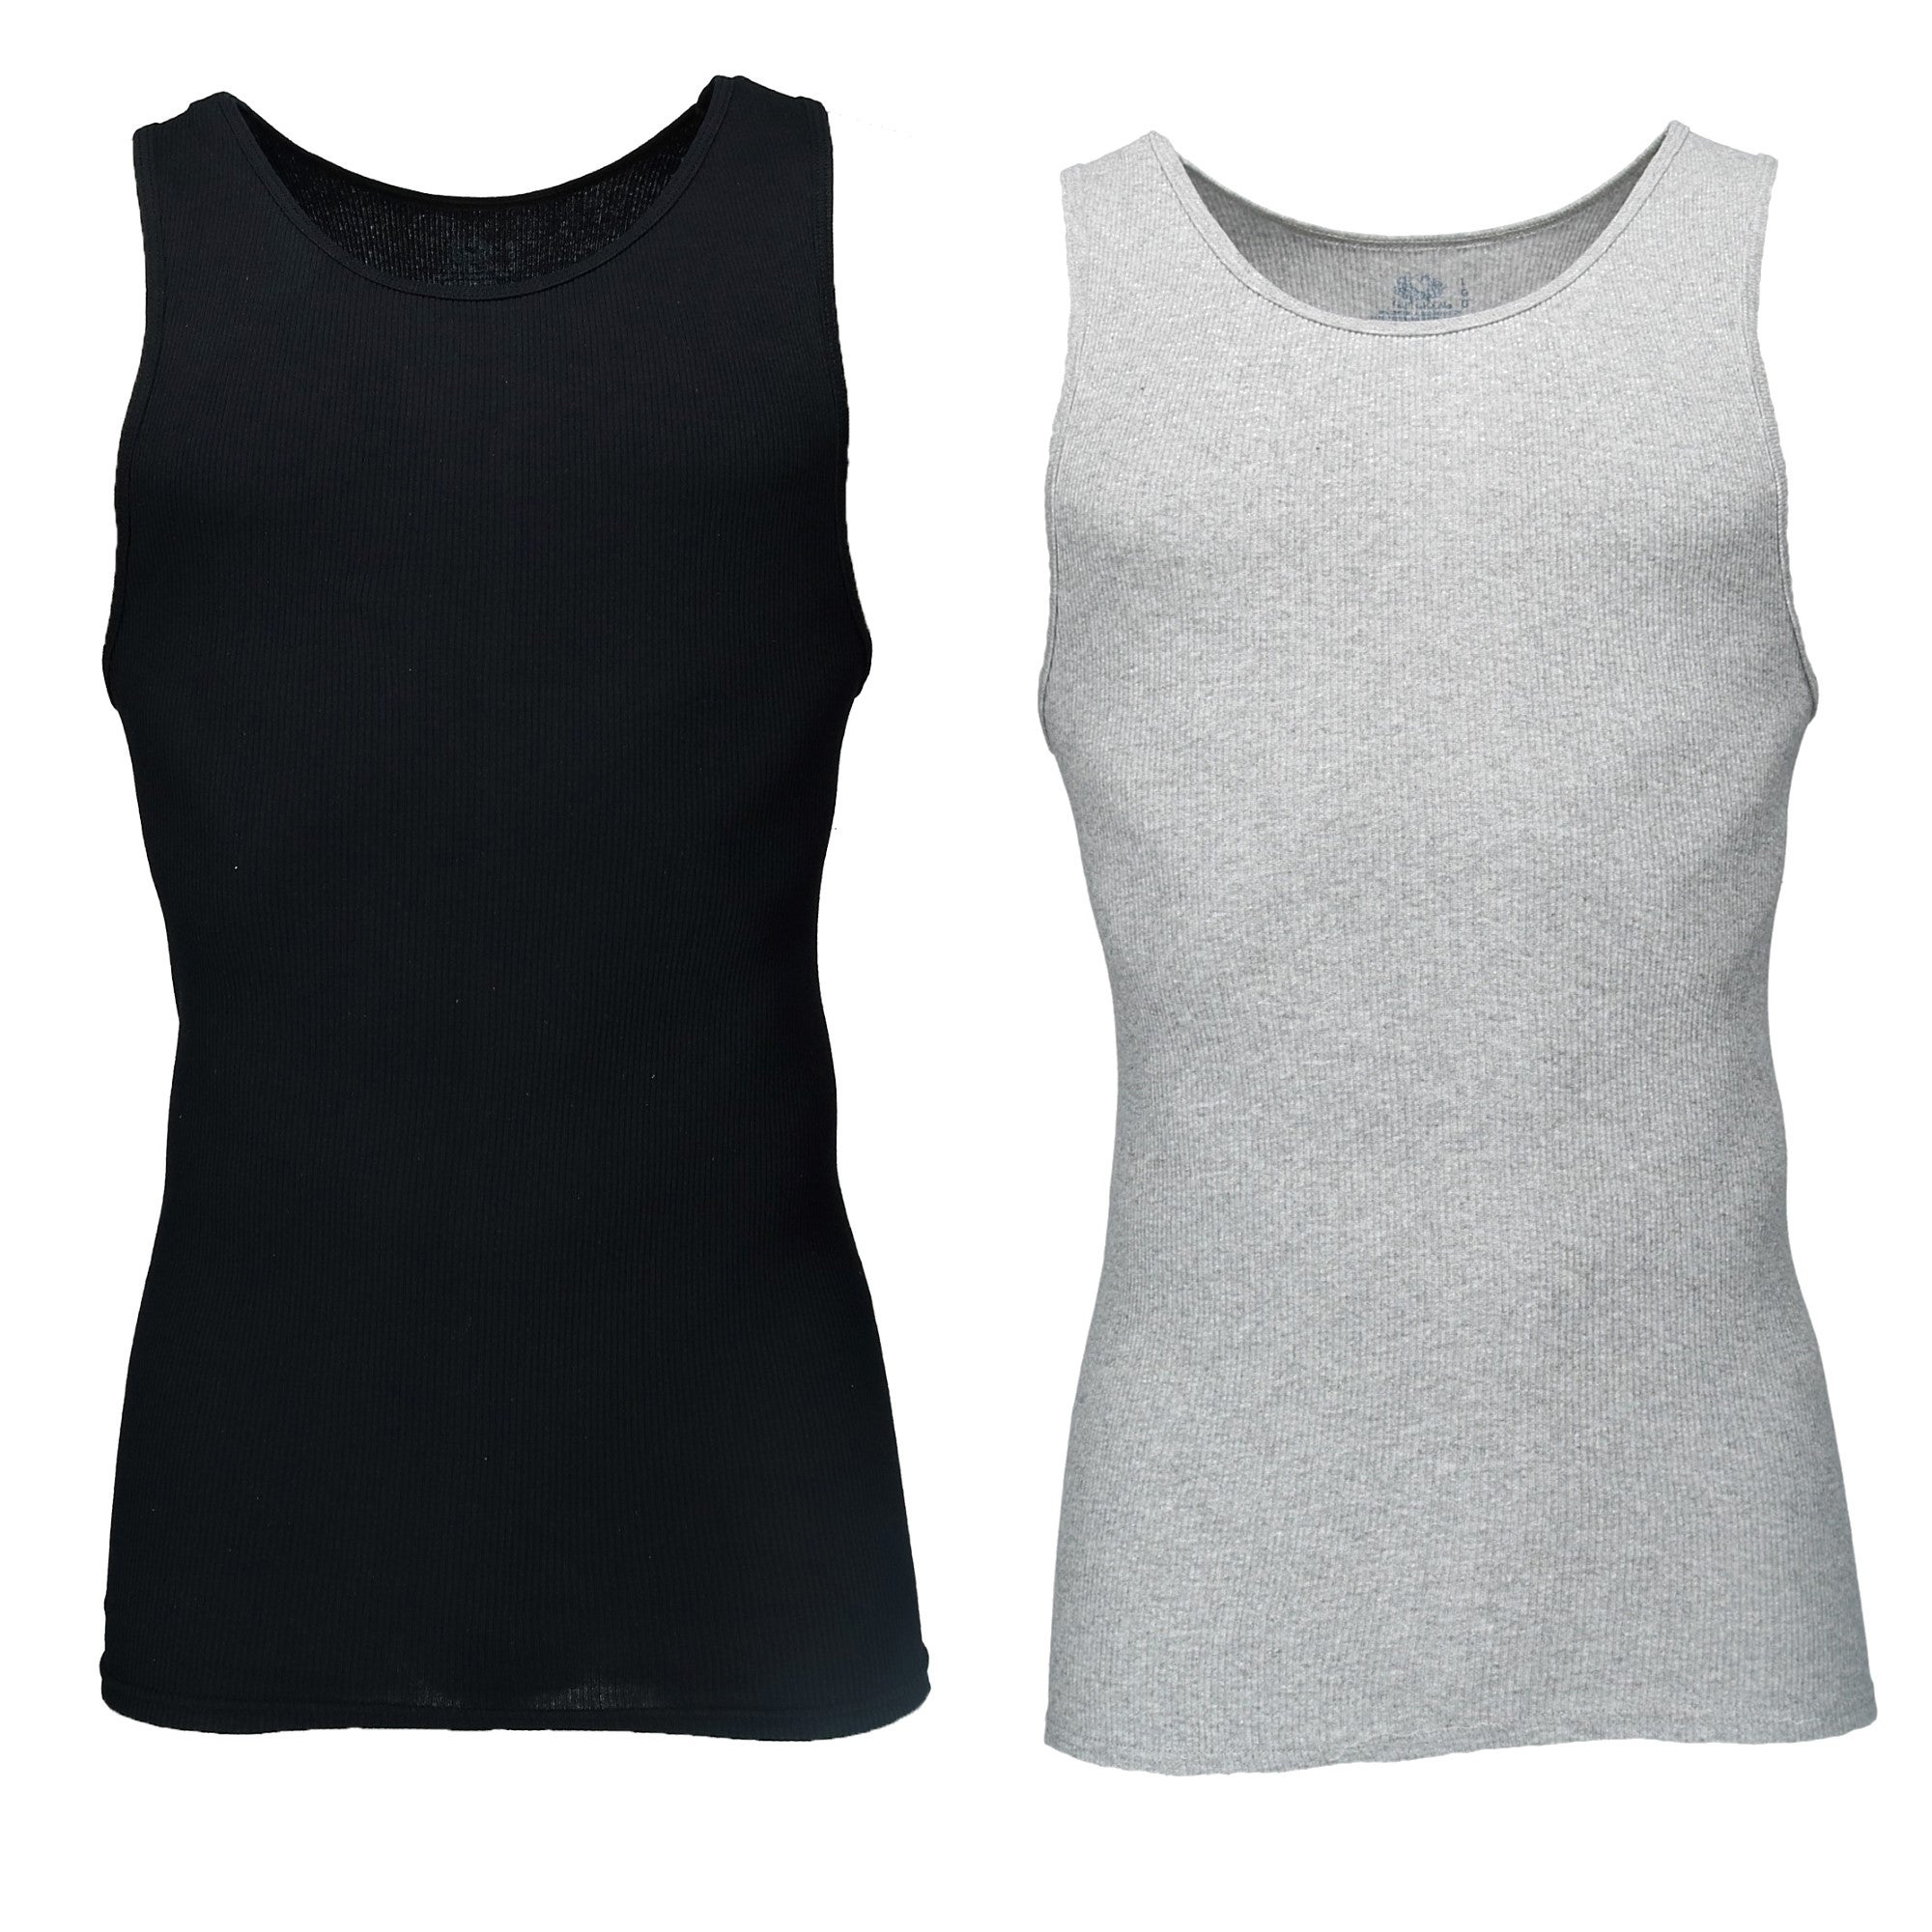 Fruit of the Loom Men/'s 3Pack Black /& Grey A Shirts Tank Tops Undershirts M